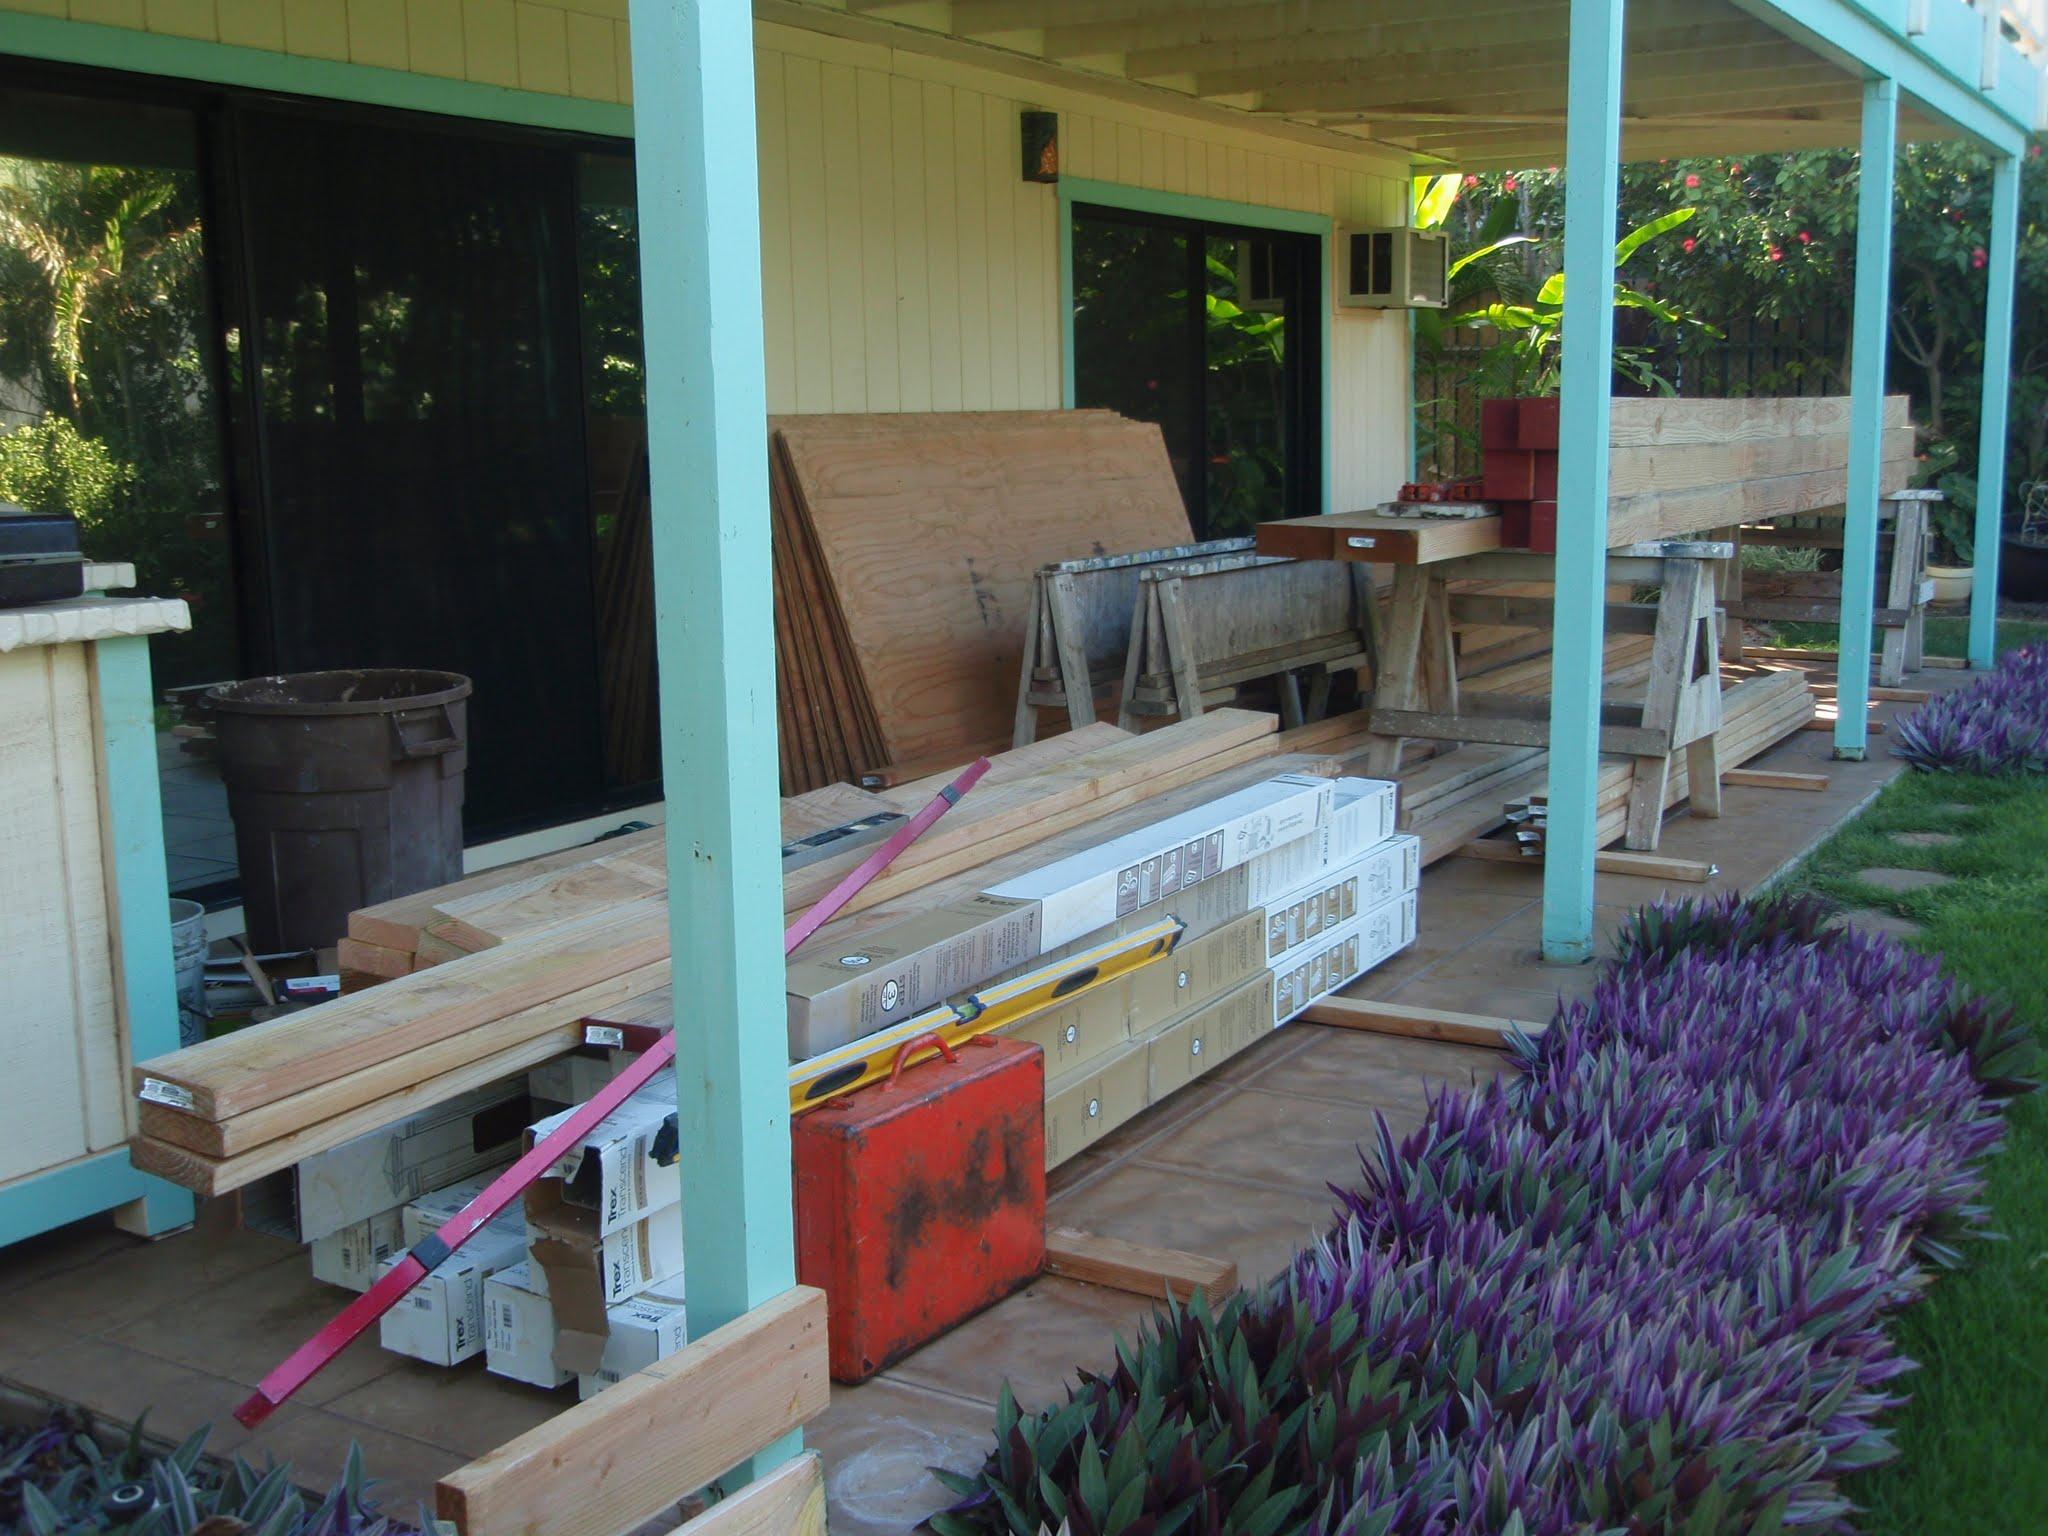 The lower patio was a great work area & storage place for most of my materials